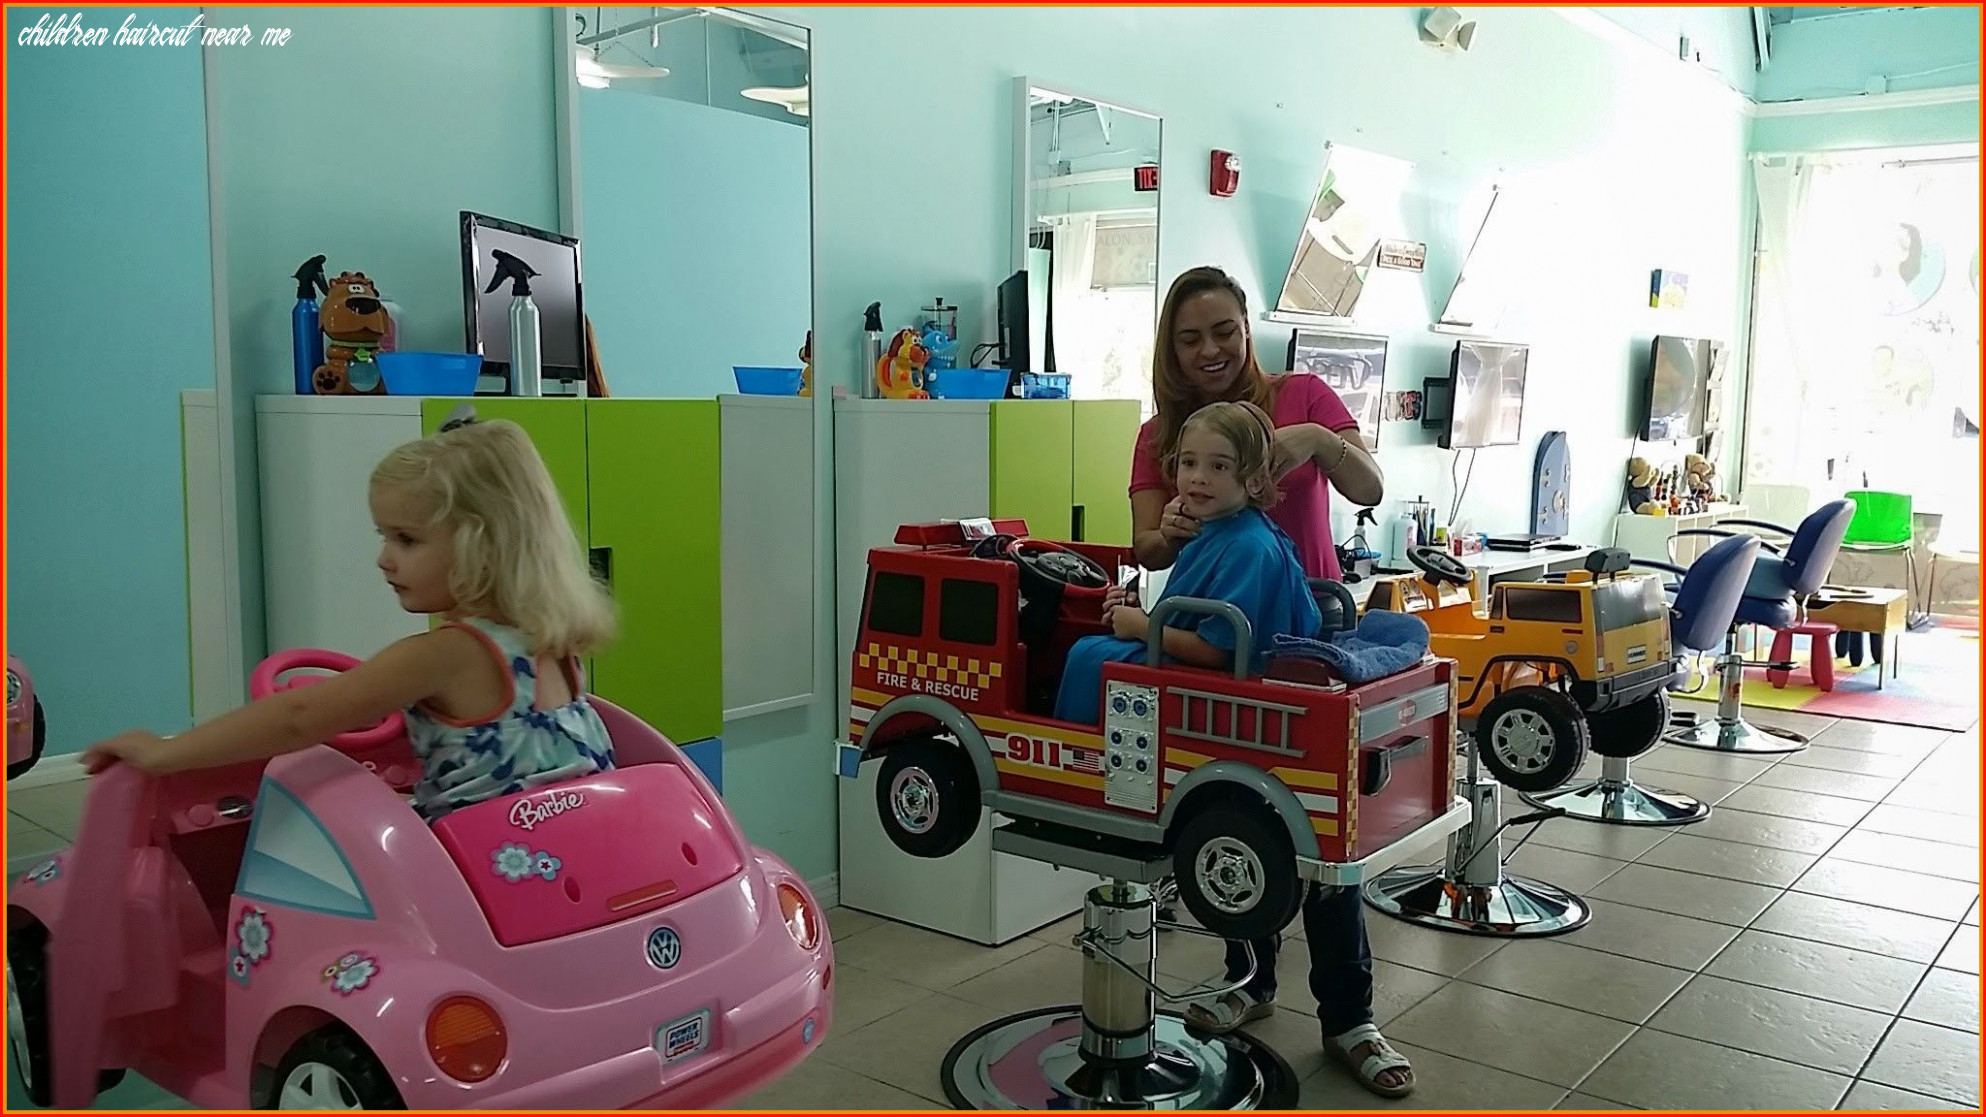 Inspiring haircut for kids near me gallery of haircuts style 12